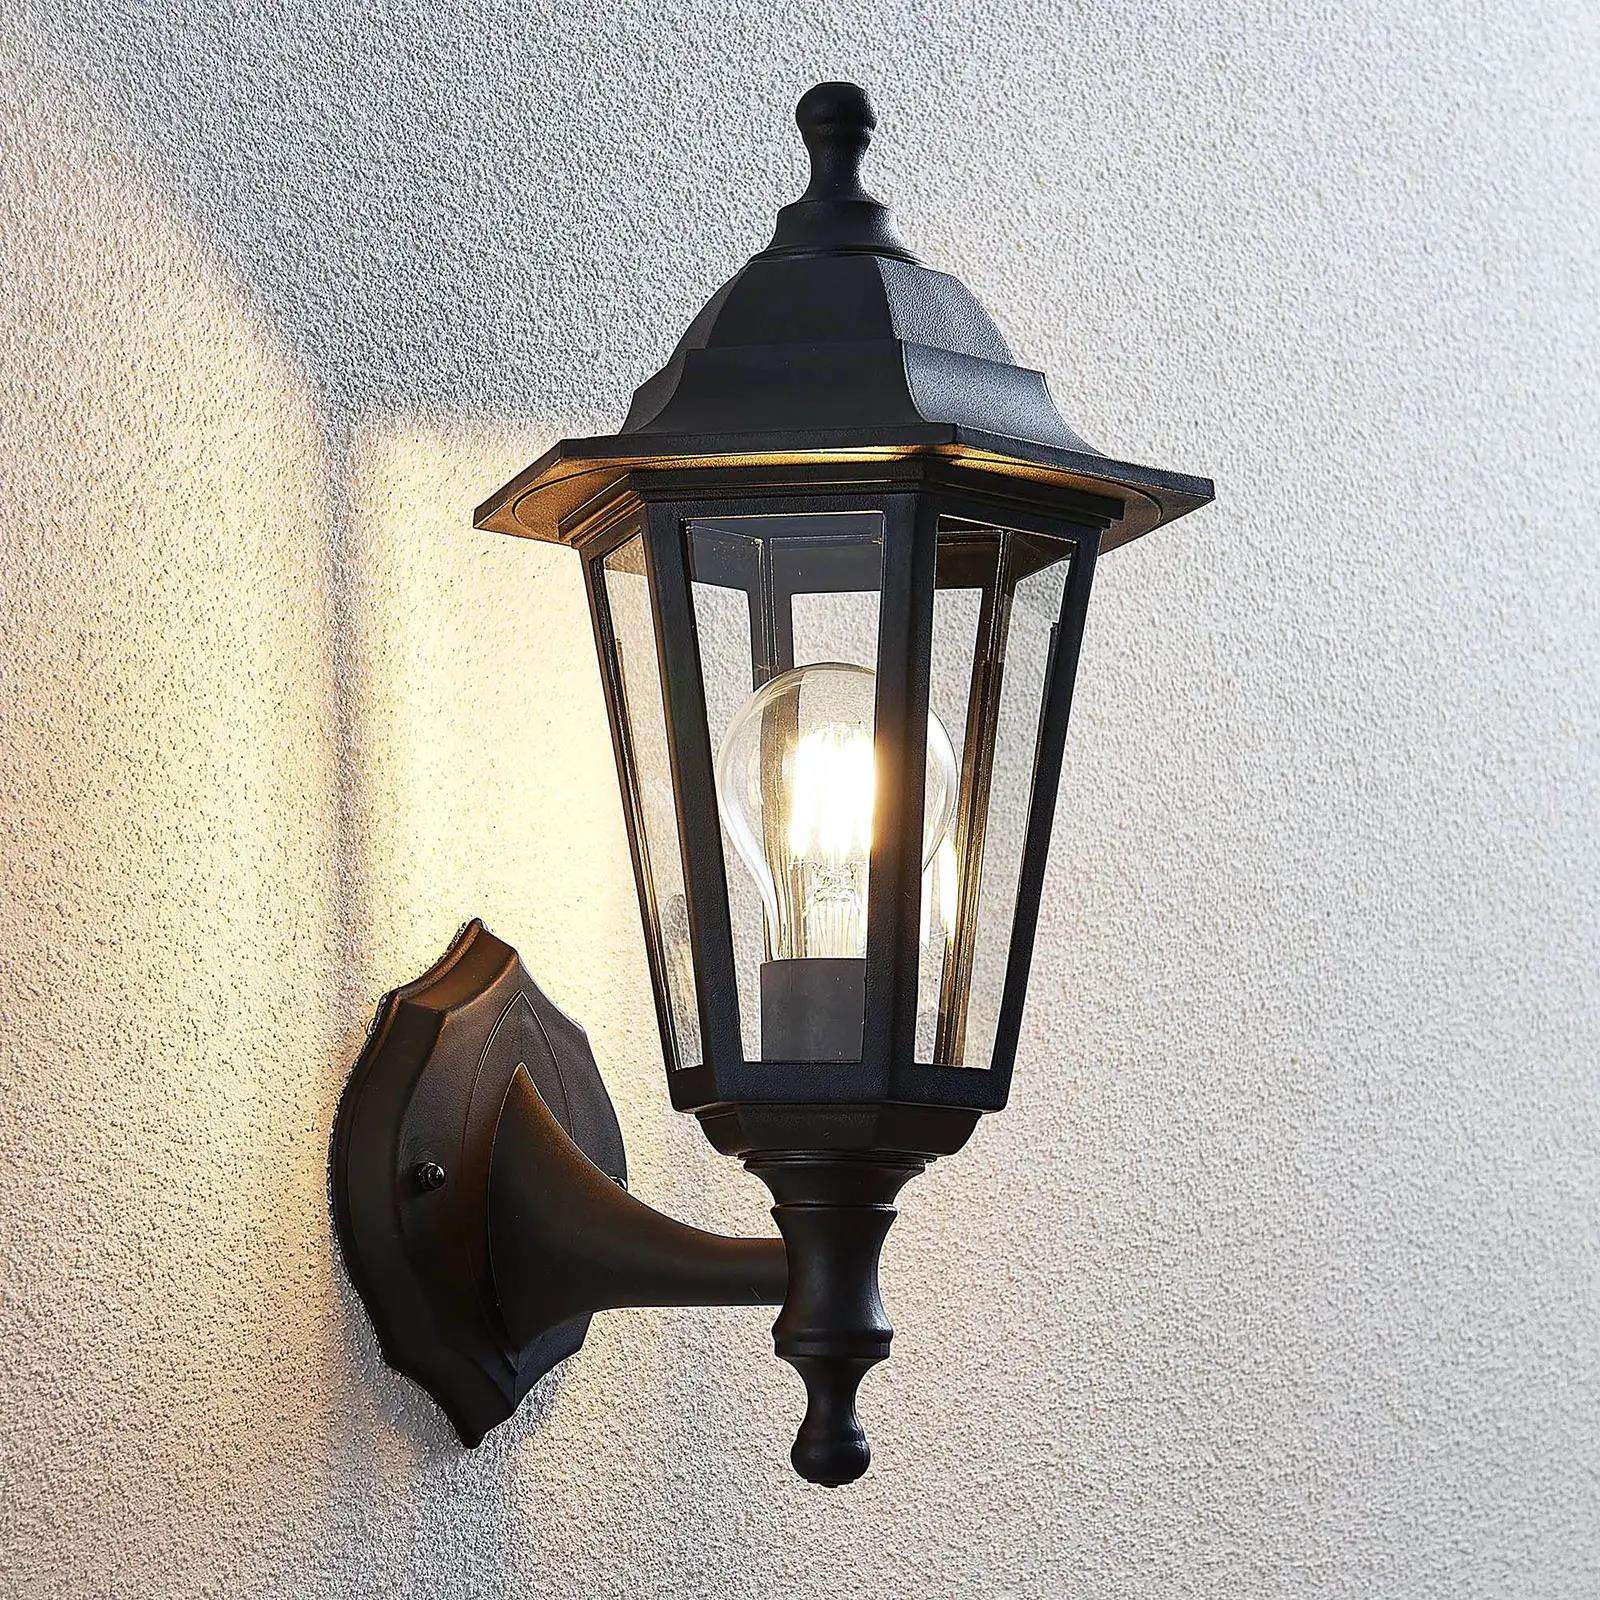 IP44 Outdoor Exterior Wall Light Exterior Outdoor Lantern Light With Stamped Glass外壁ランタン